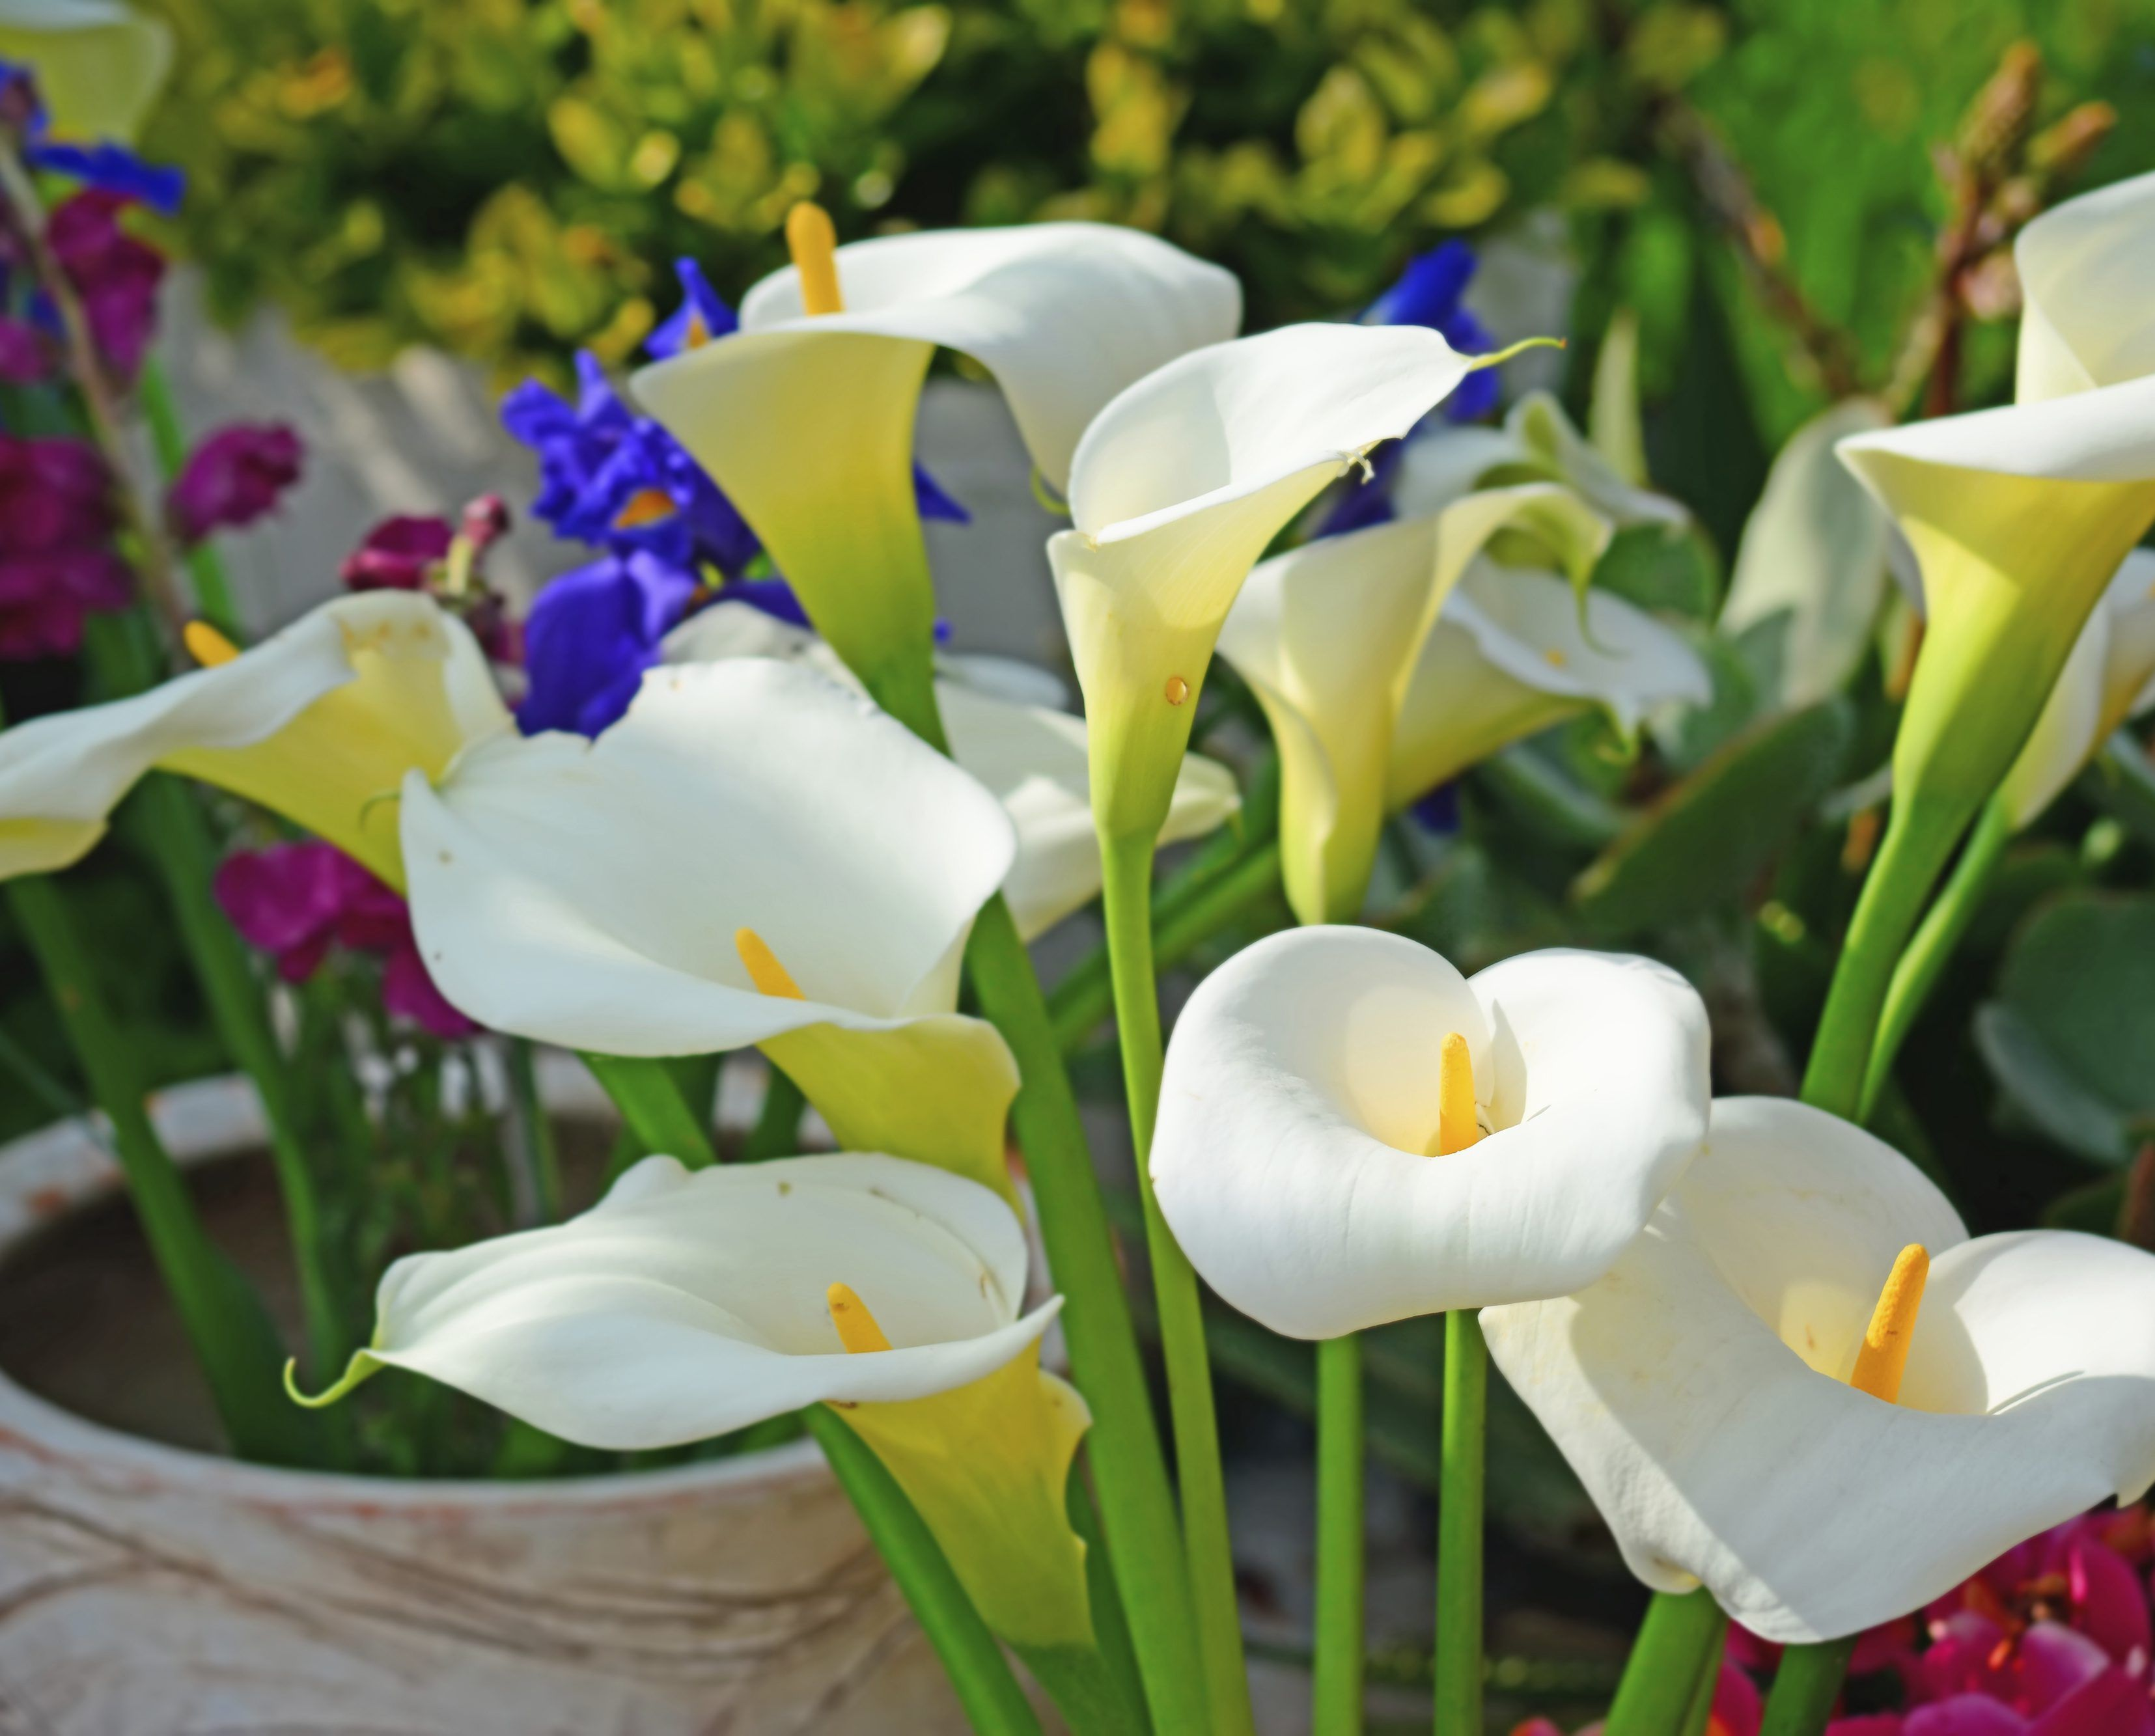 How to plant calla lilly bulbs zantedeschia aethiopica calla how to plant calla lilly bulbs calla lilies zantedeschia aethiopica originally hail from izmirmasajfo